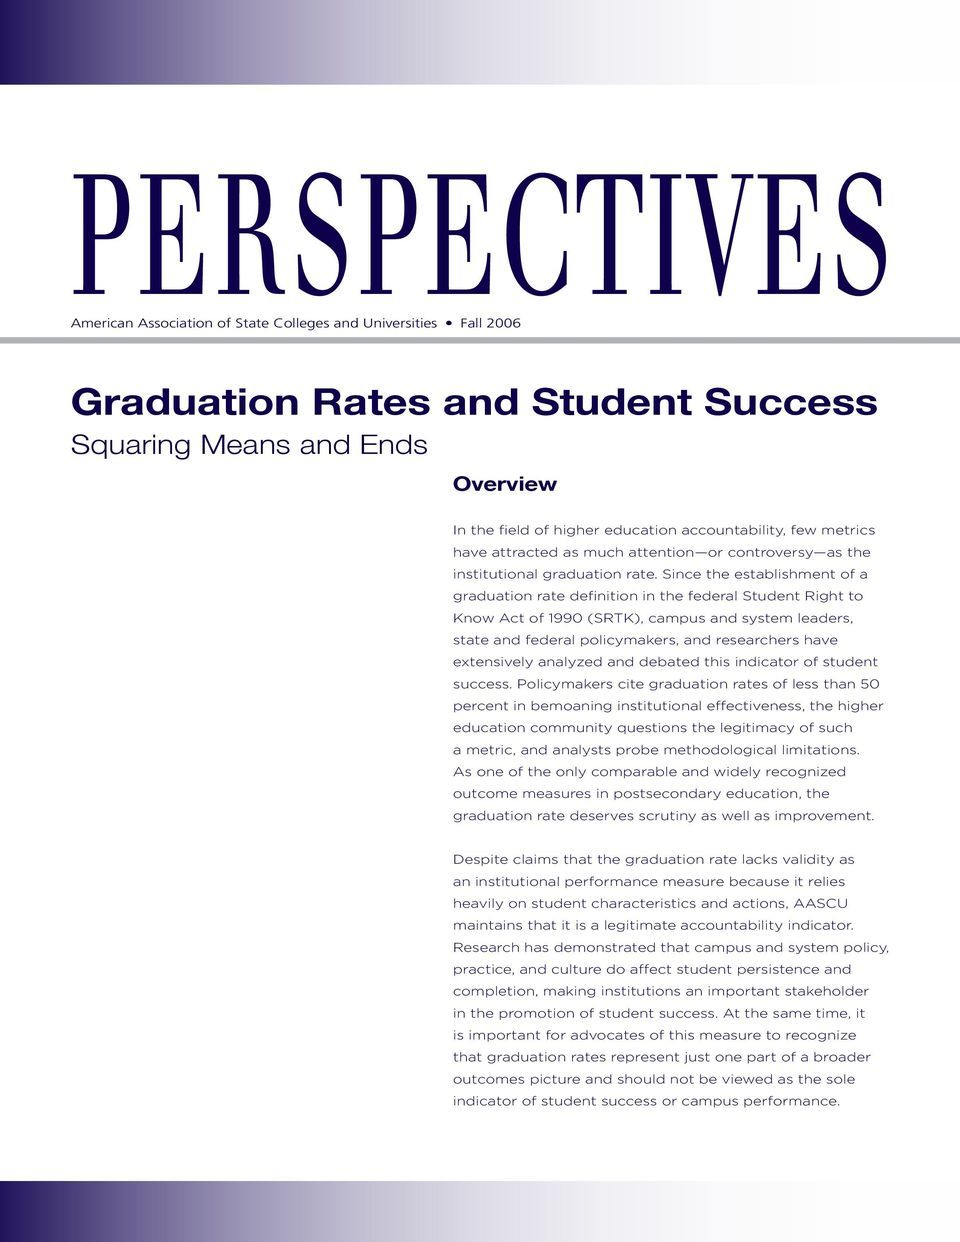 Since the establishment of a graduation rate definition in the federal Student Right to Know Act of 1990 (SRTK), campus and system leaders, state and federal policymakers, and researchers have